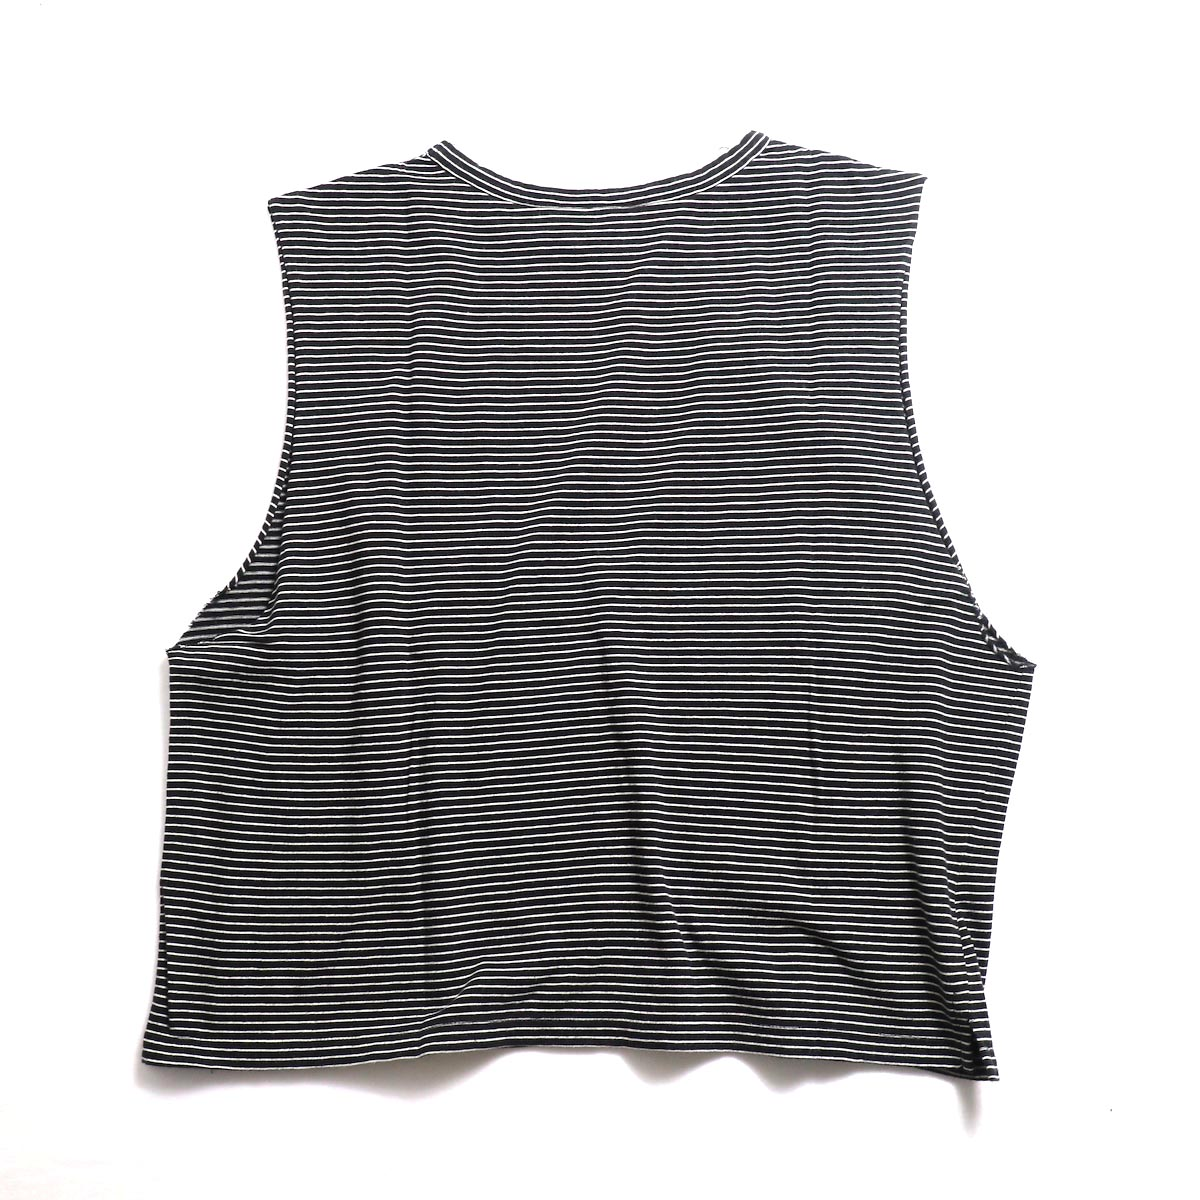 UNUSED / US1568 Border No Sleeve Tee (Black×White)背面